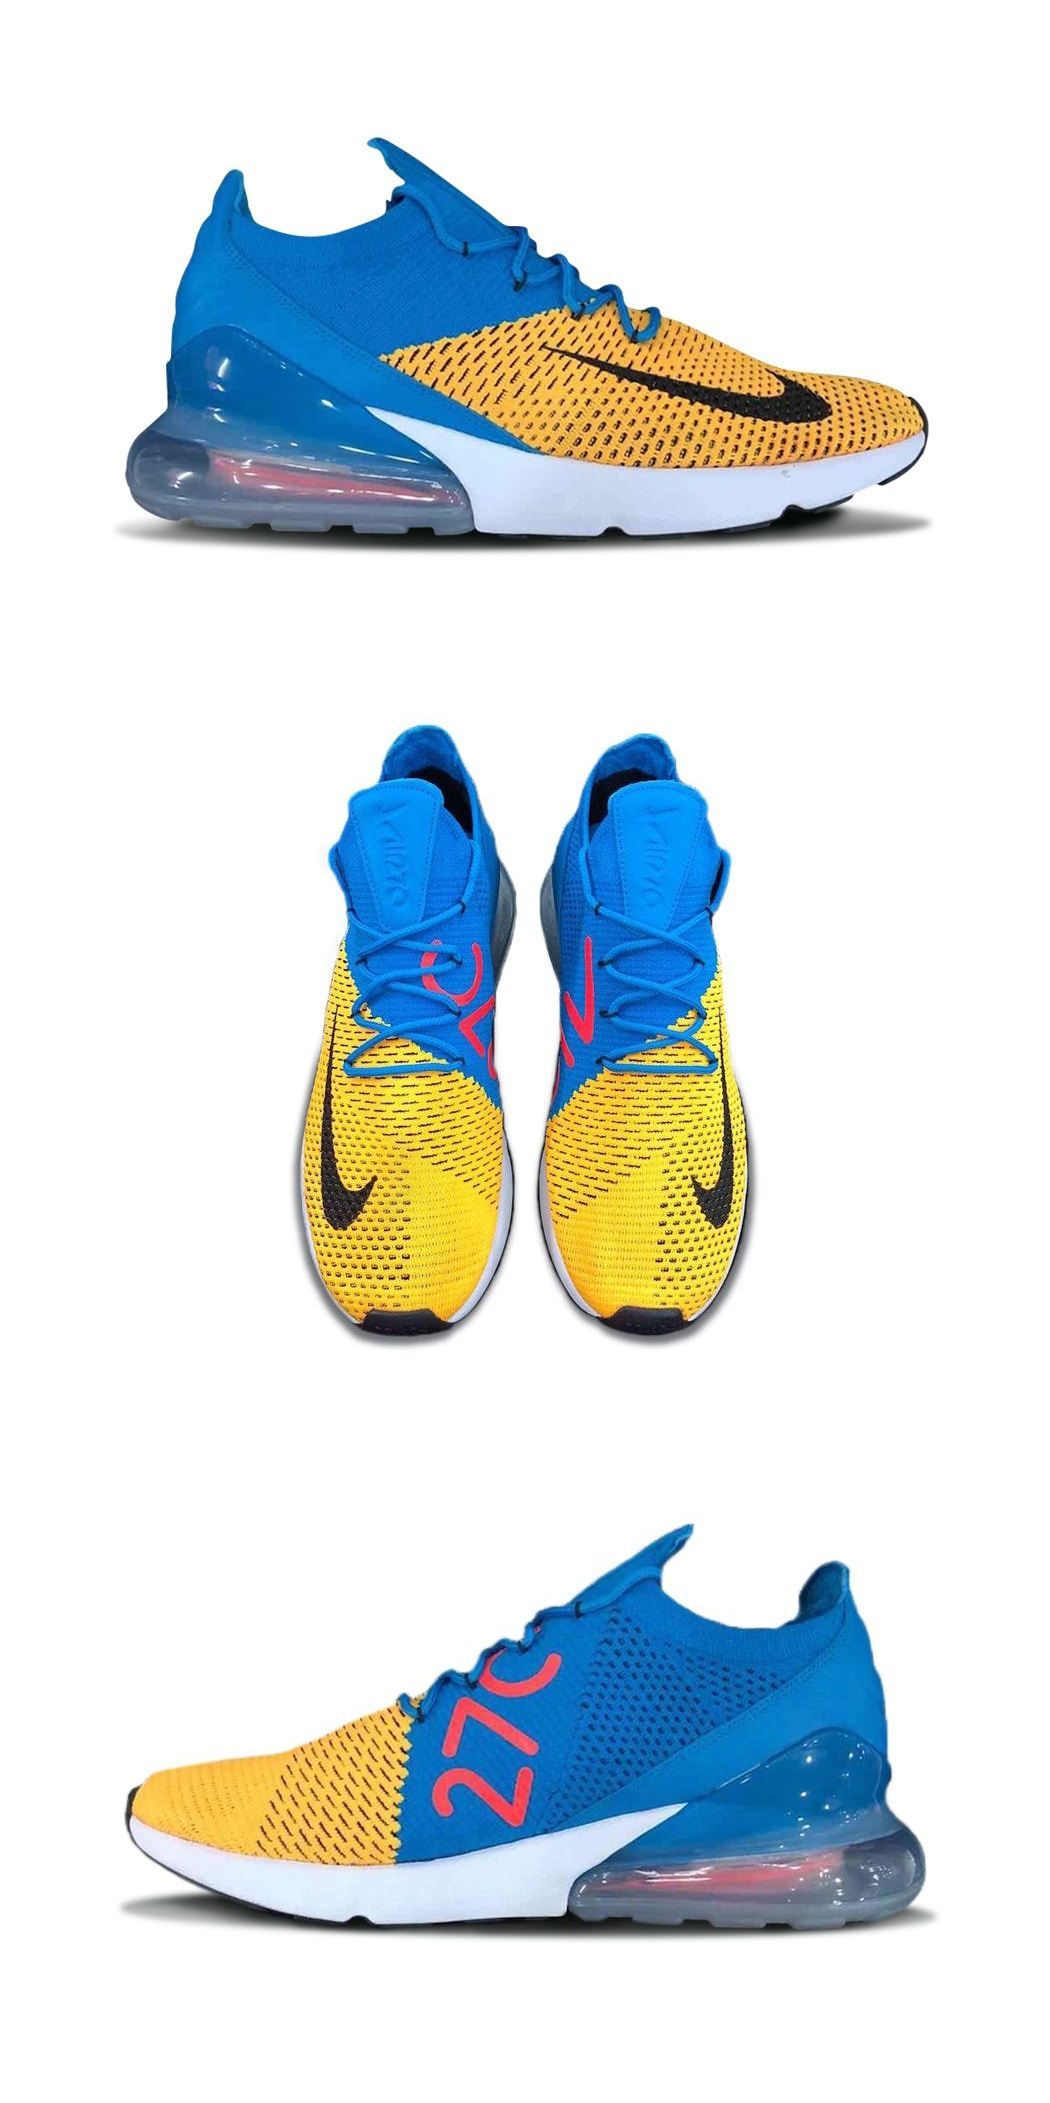 size 40 c190a 392b7 Nike Air Max 270 Flyknit Blue/Yellow | Kicks in 2019 | Air ...